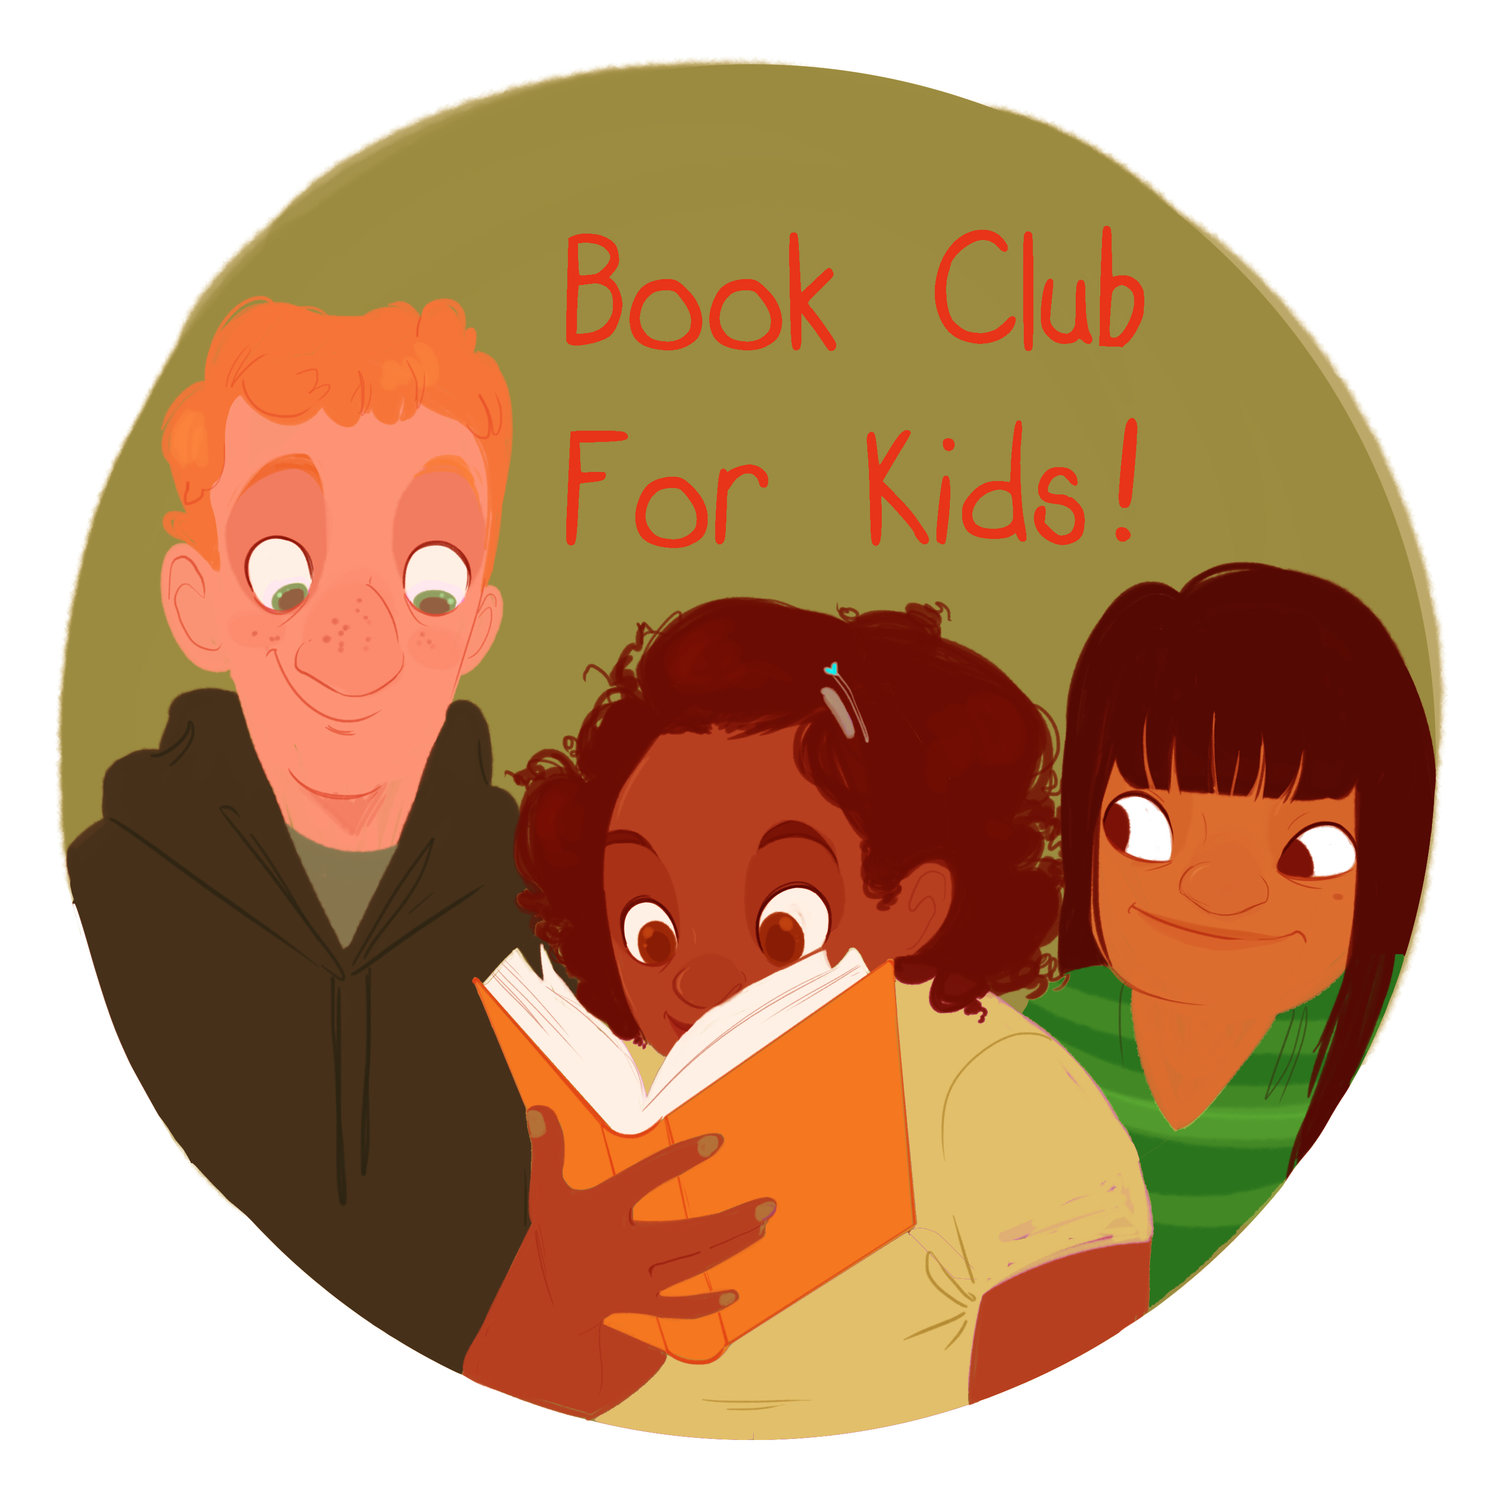 Book Club for Kids! podcast logo